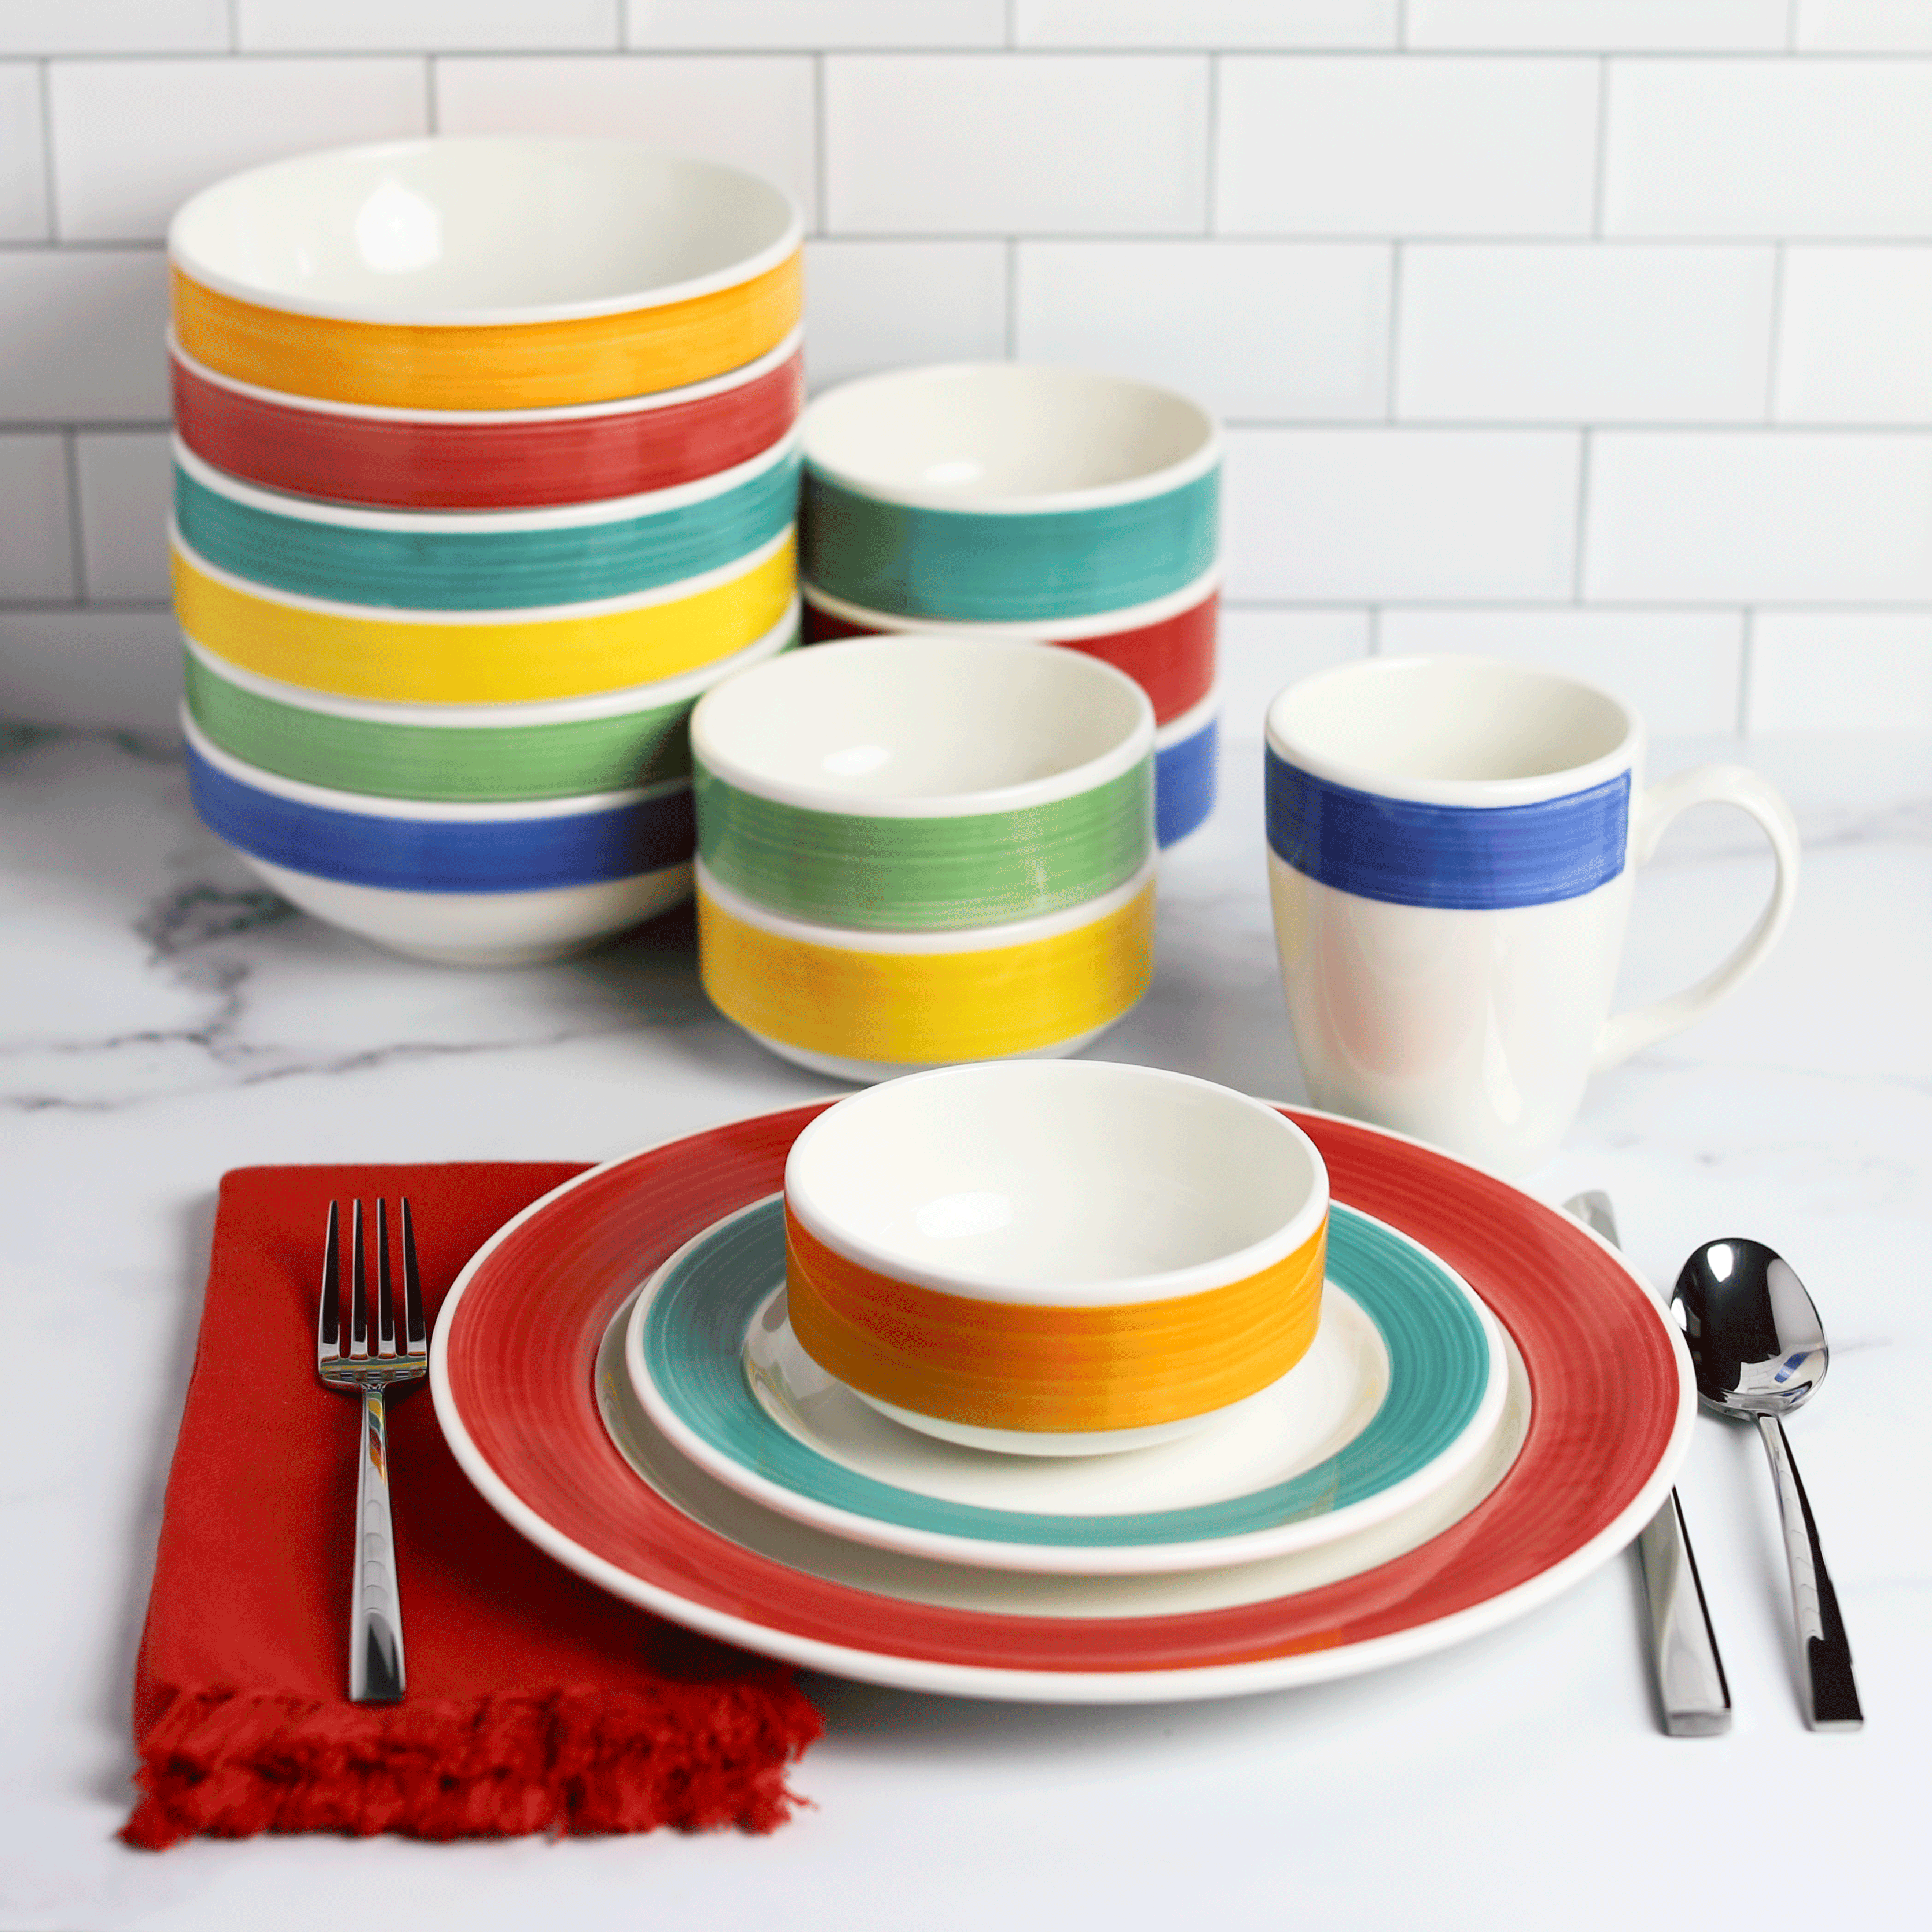 The newest collection that beautifully accents your existing Fiesta collection, Brush Tones by The Fiesta Tableware Company.